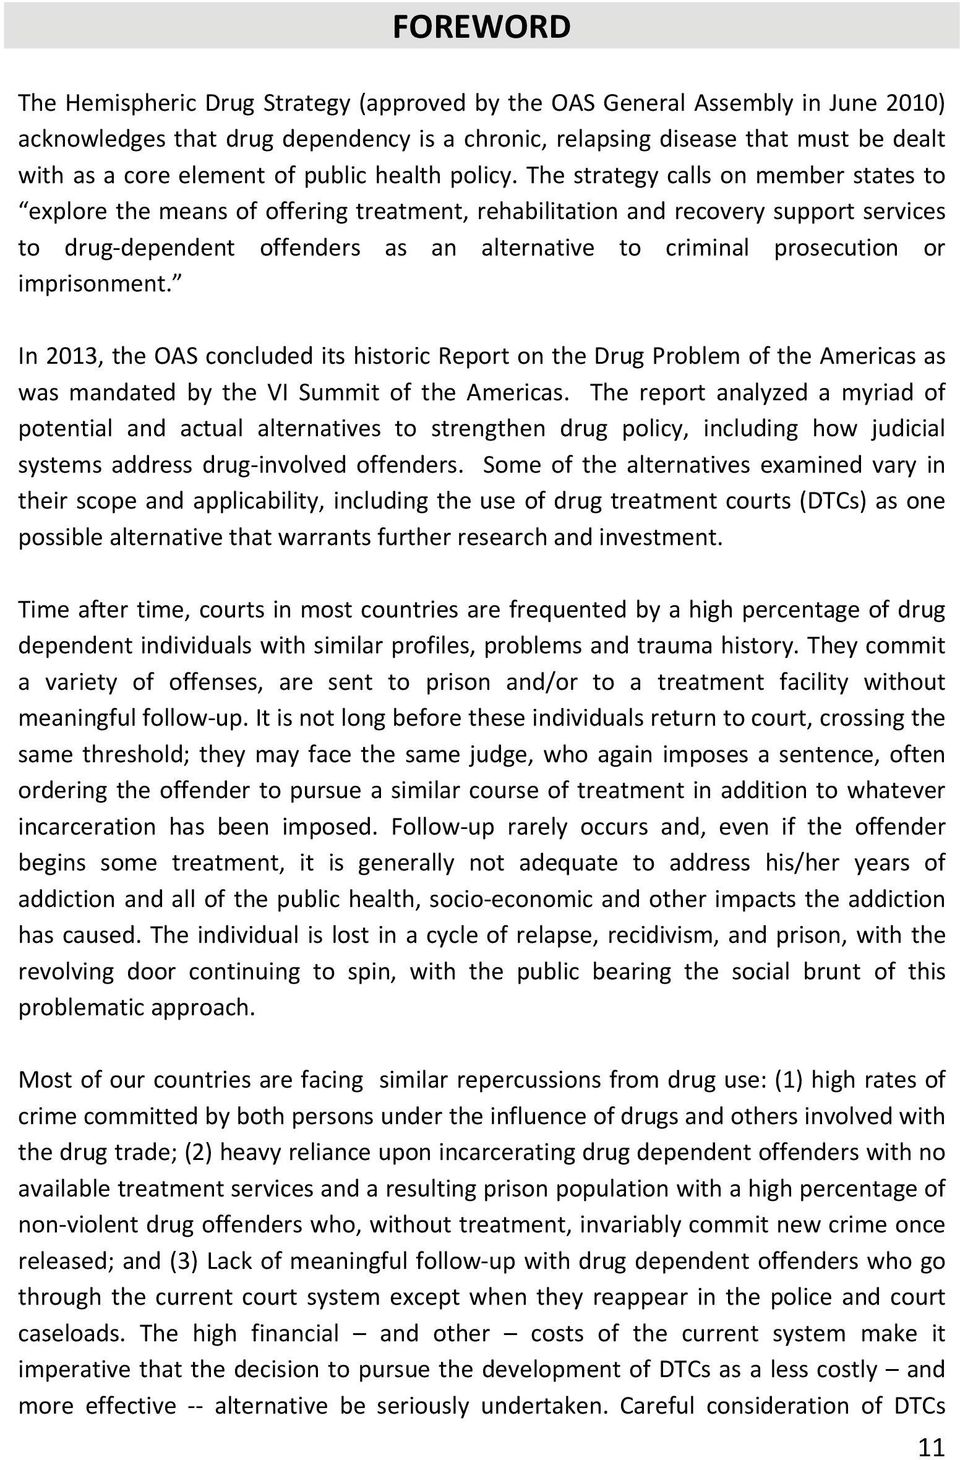 The strategy calls on member states to explore the means of offering treatment, rehabilitation and recovery support services to drug dependent offenders as an alternative to criminal prosecution or